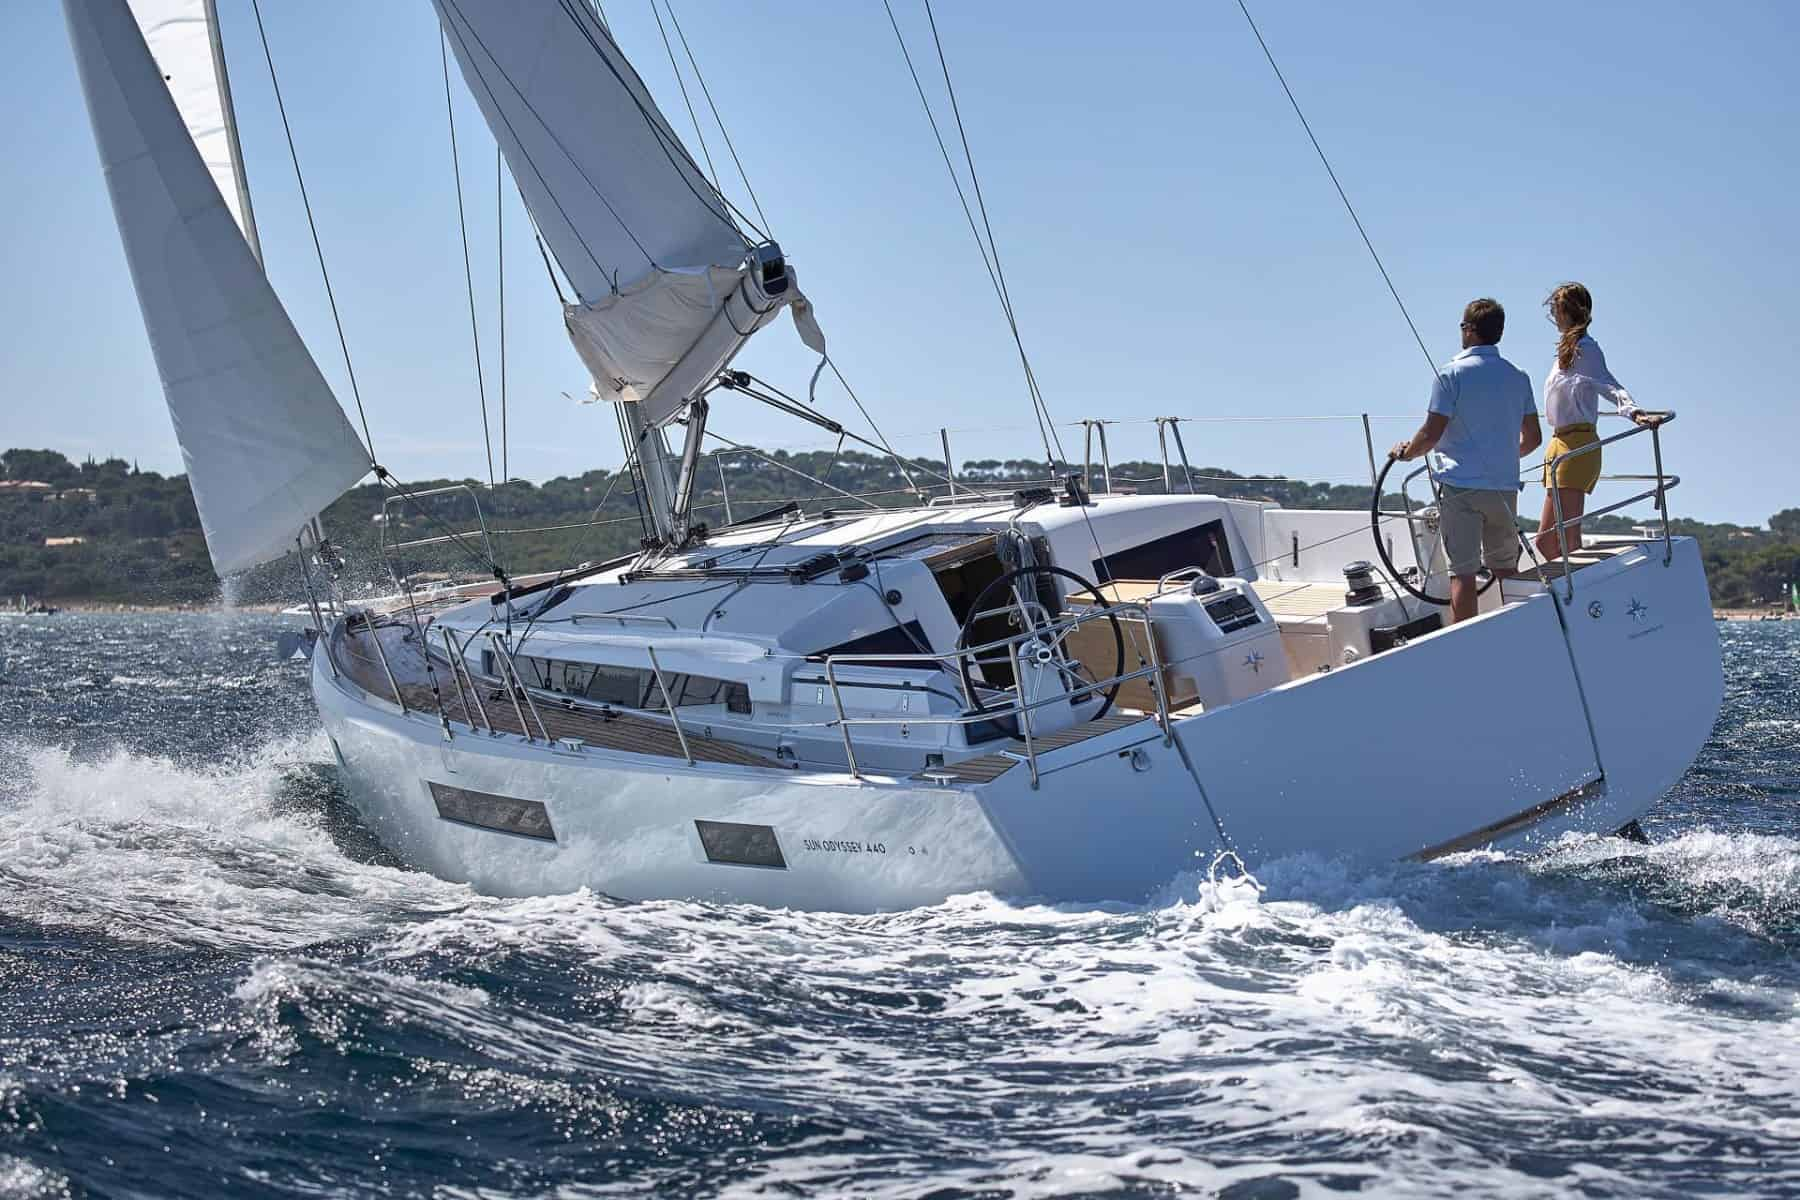 Jeanneau Sun Odyssey 440 from behind with wind in its sail a sunny day